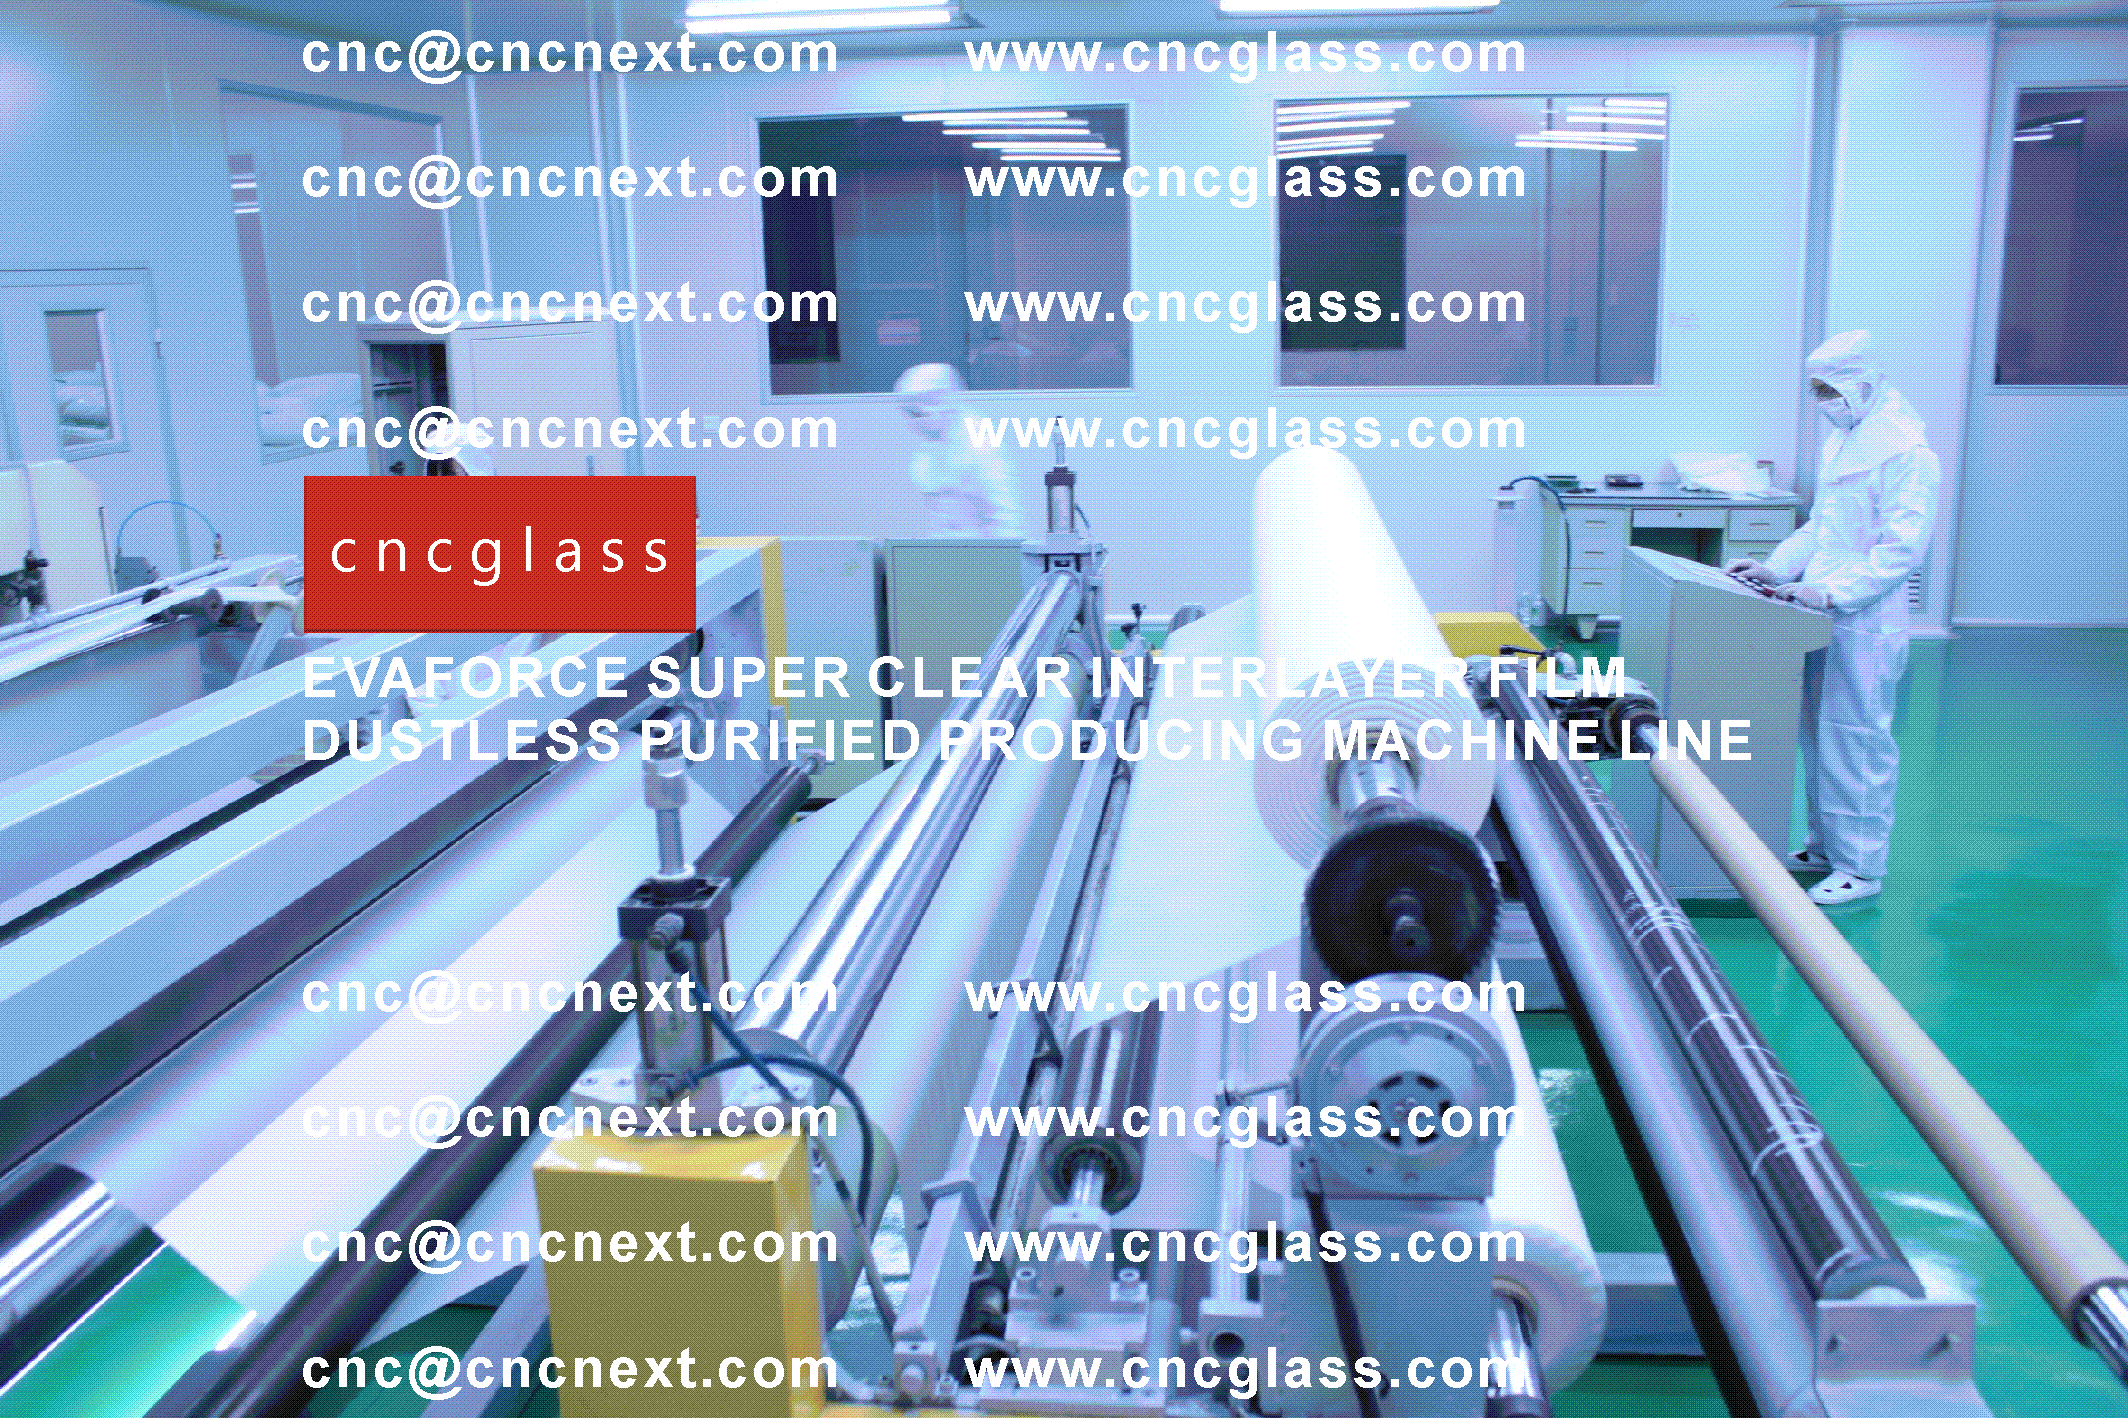 003 EVAFORCE SUPER CLEAR INTERLAYER FILM PRODUCING MACHINE LINE